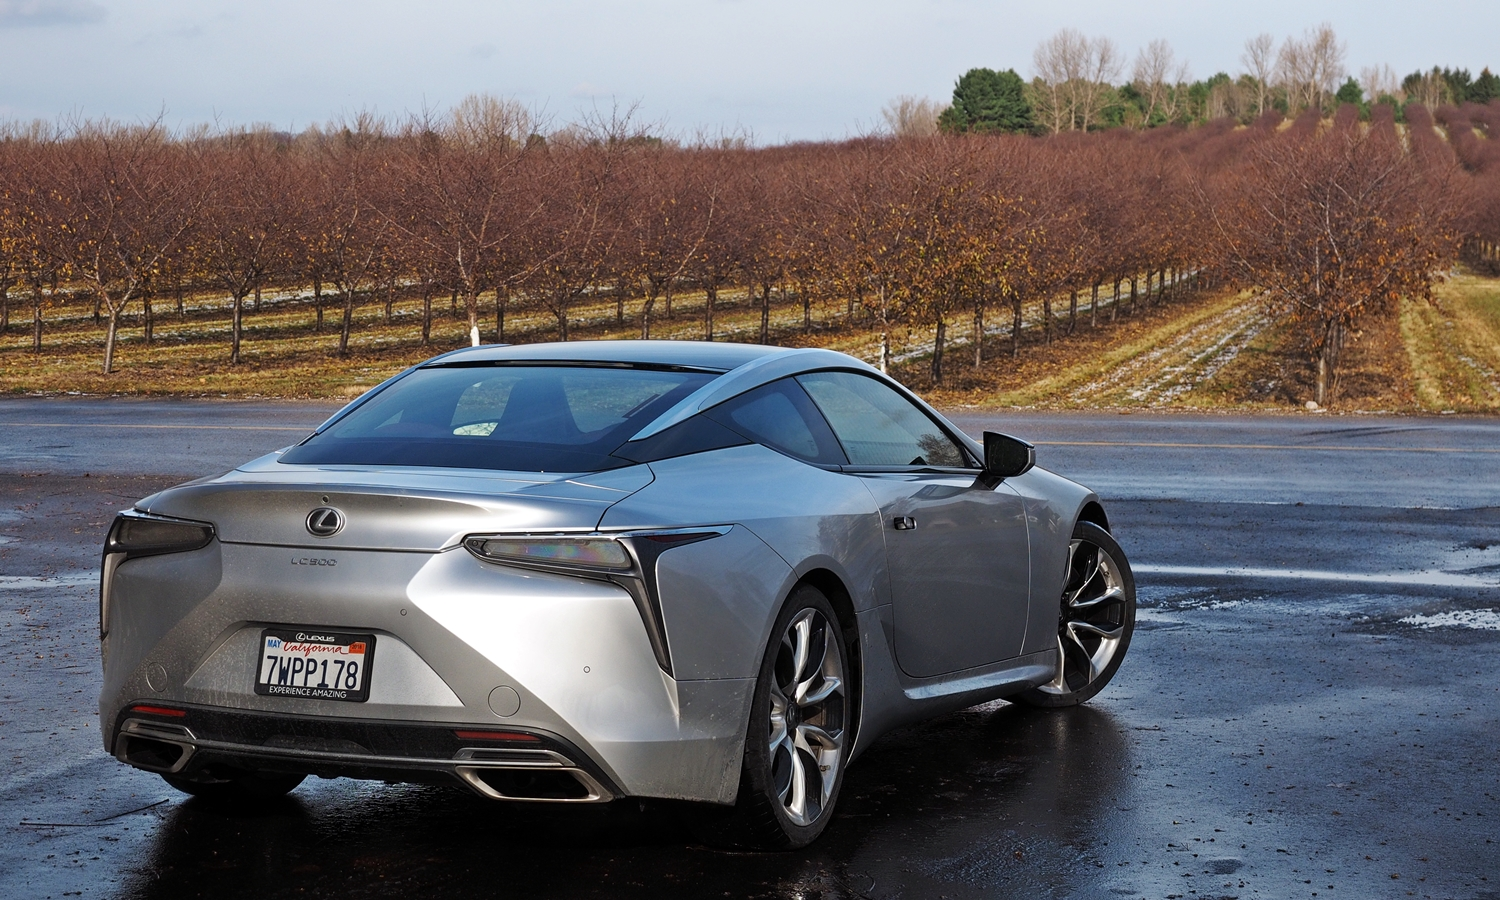 Lexus LC Photos: Lexus LC 500 rear angle view